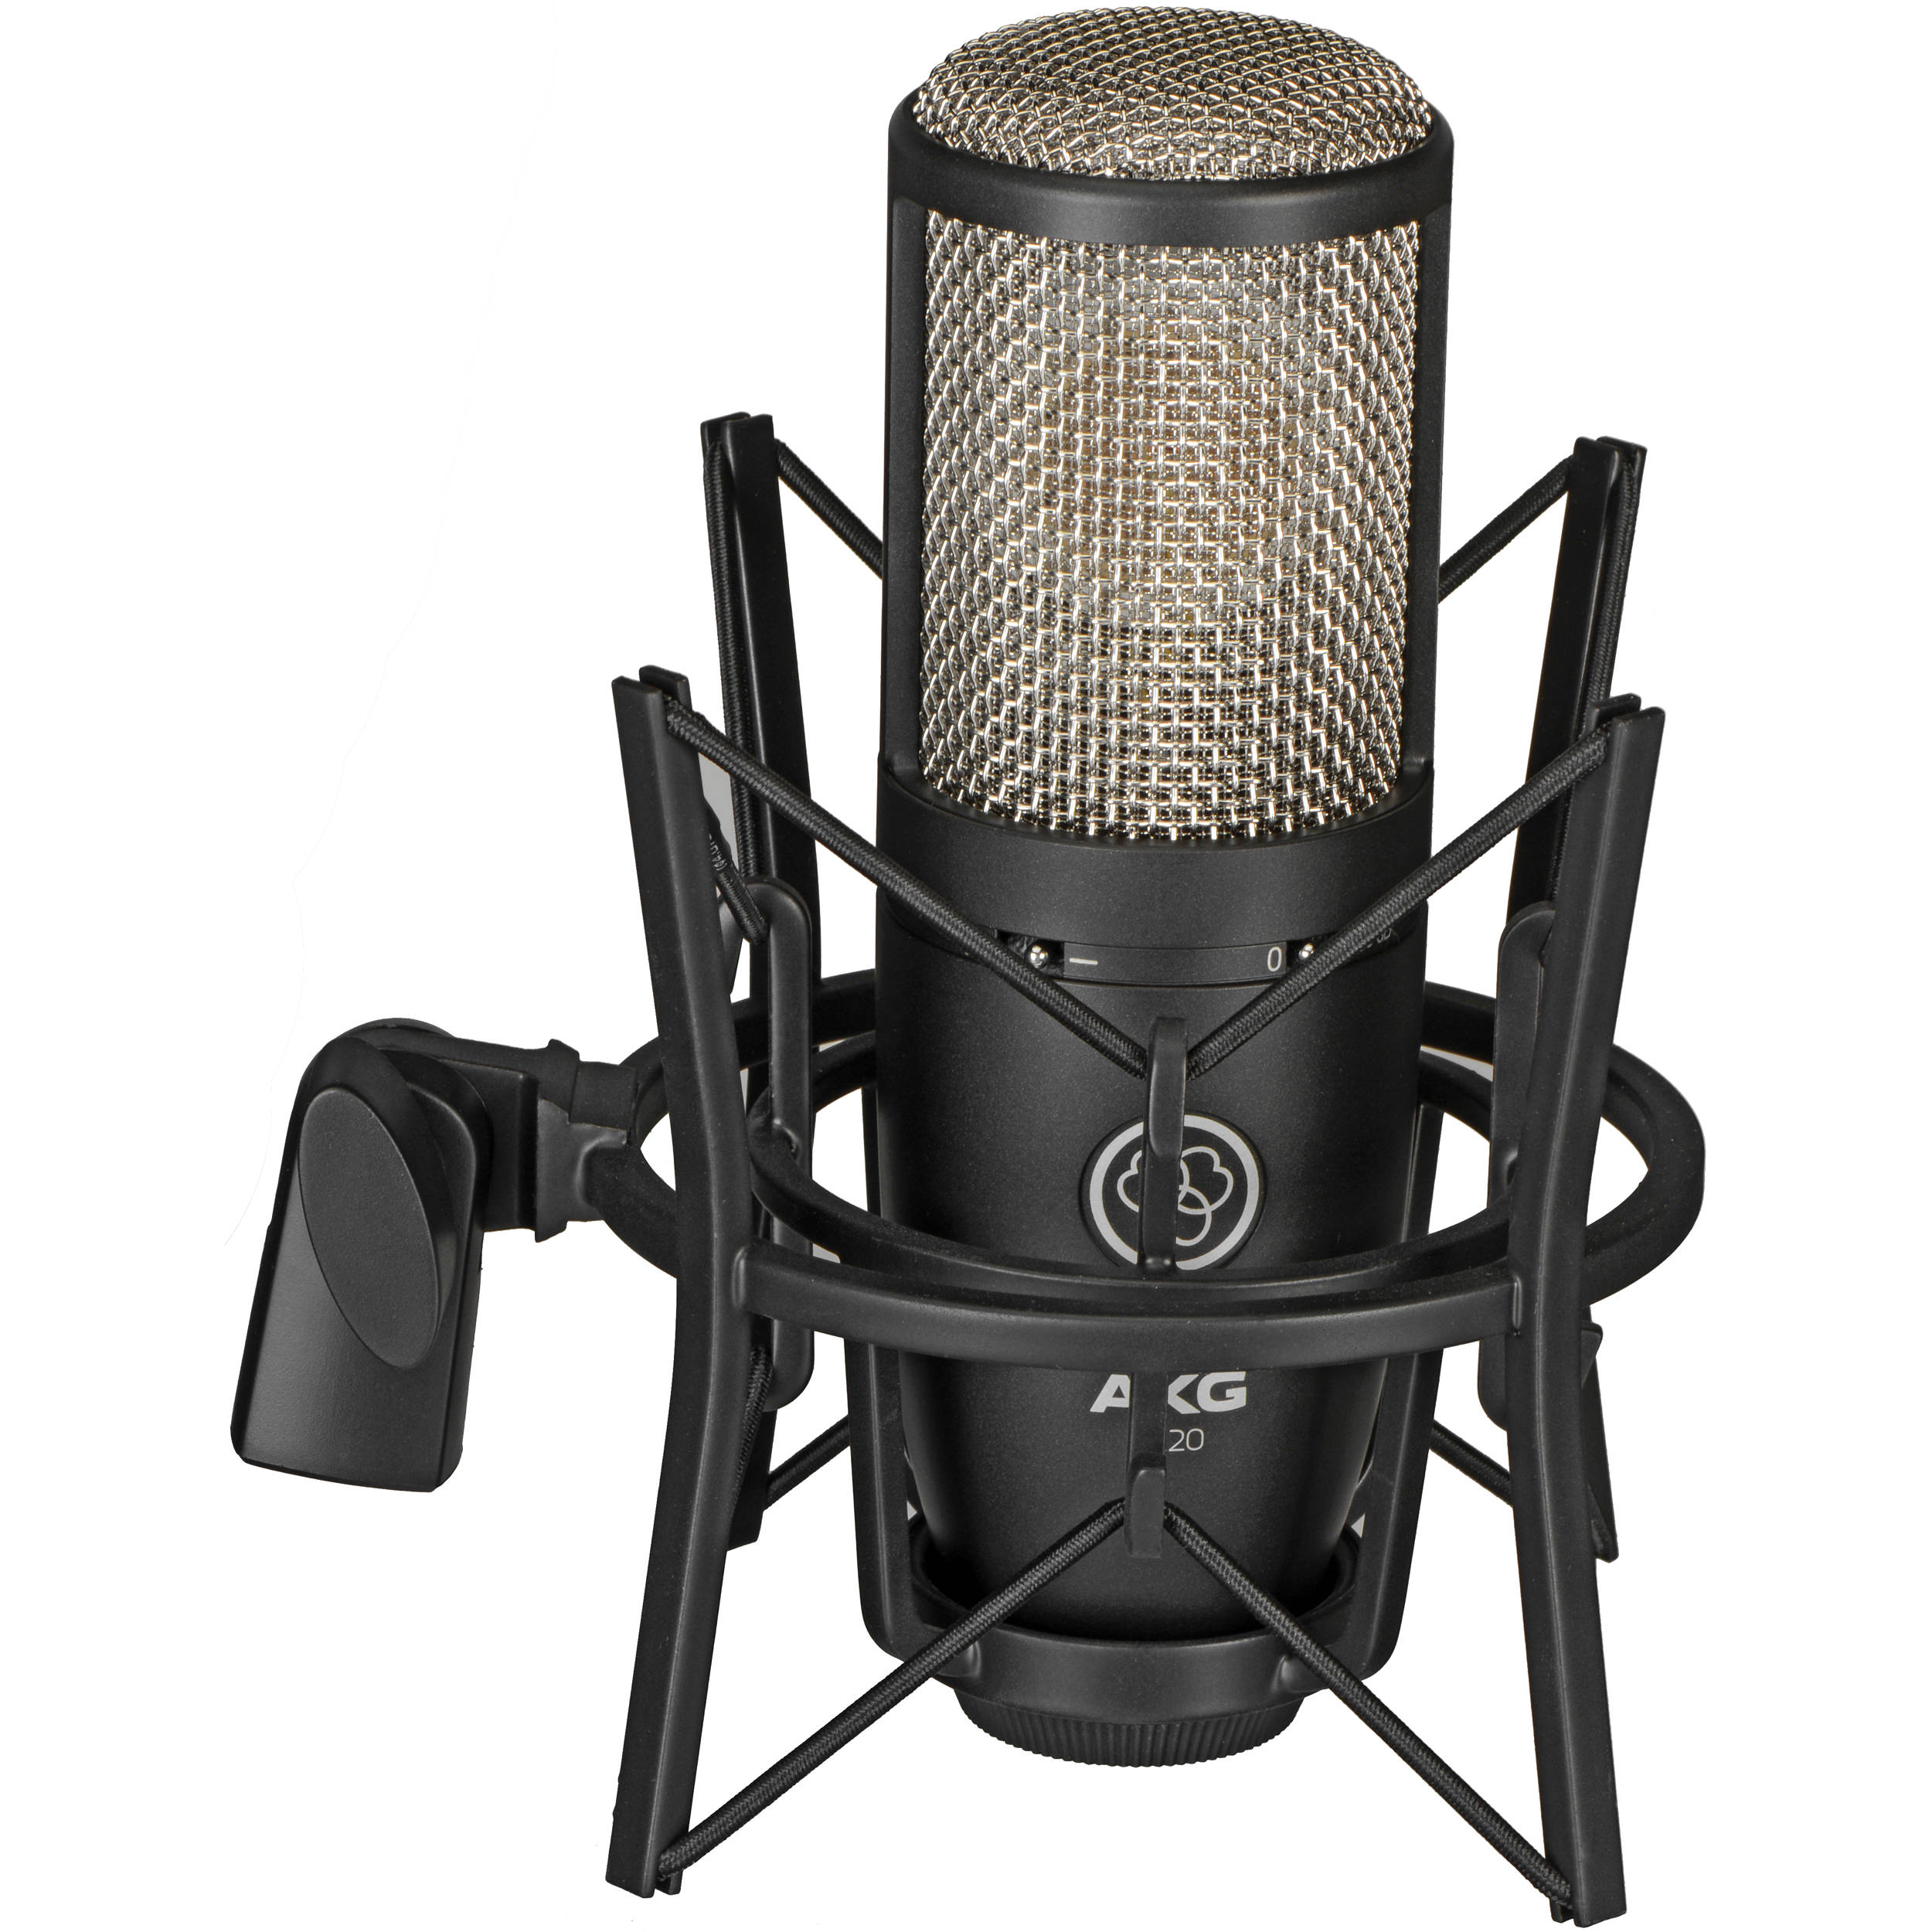 AKG Project Studio P220 Large-Diaphragm Cardioid ...